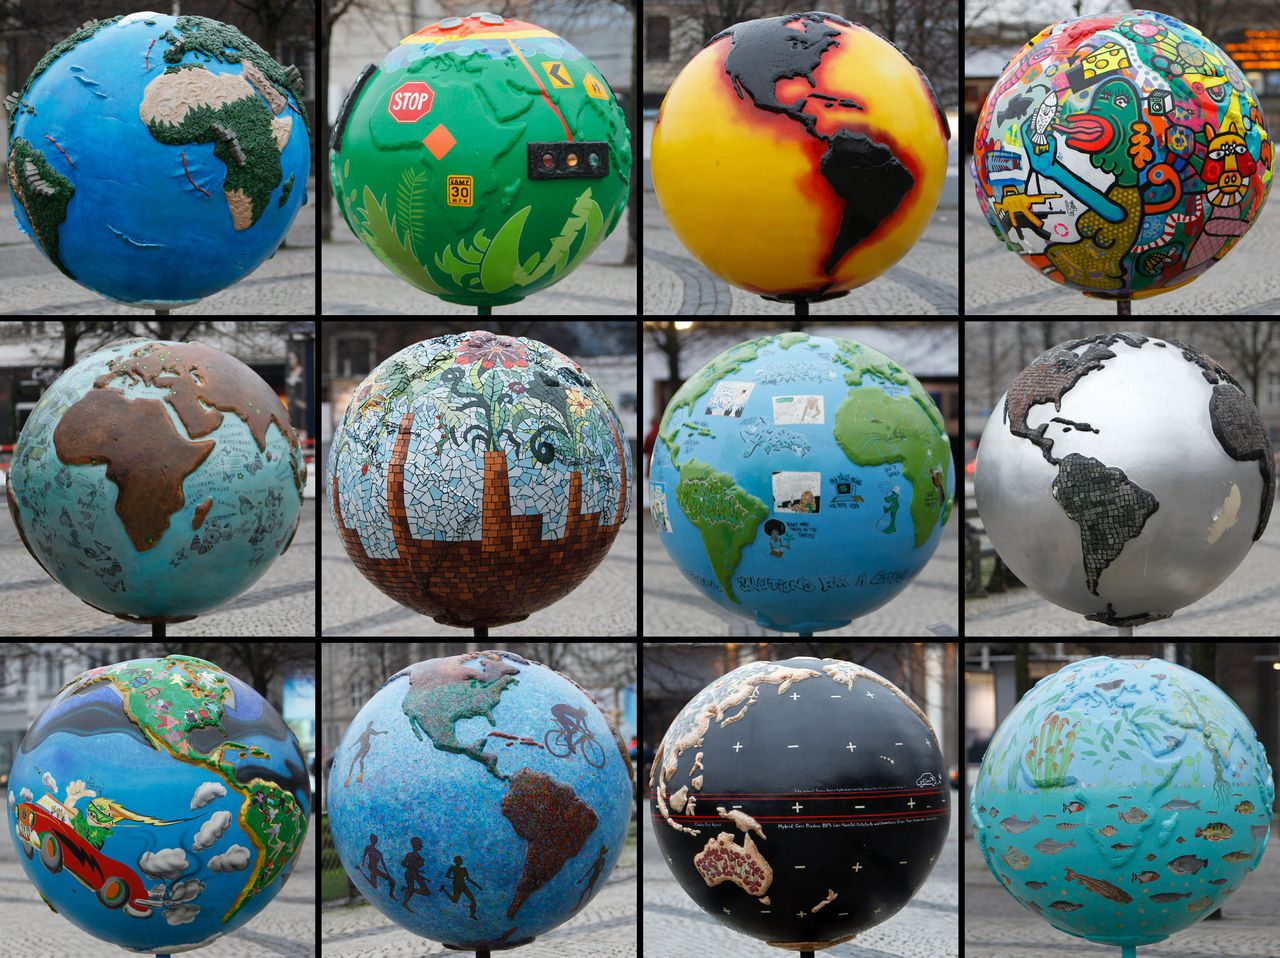 A combination picture shows different globes as a part of an installation in downtown Copenhagen December 6, 2009. Copenhagen is the host city for the United Nations Climate Change Conference 2009, which lasts from December 7 until December 18. REUTERS/Pawel Kopczynski (DENMARK ENVIRONMENT)